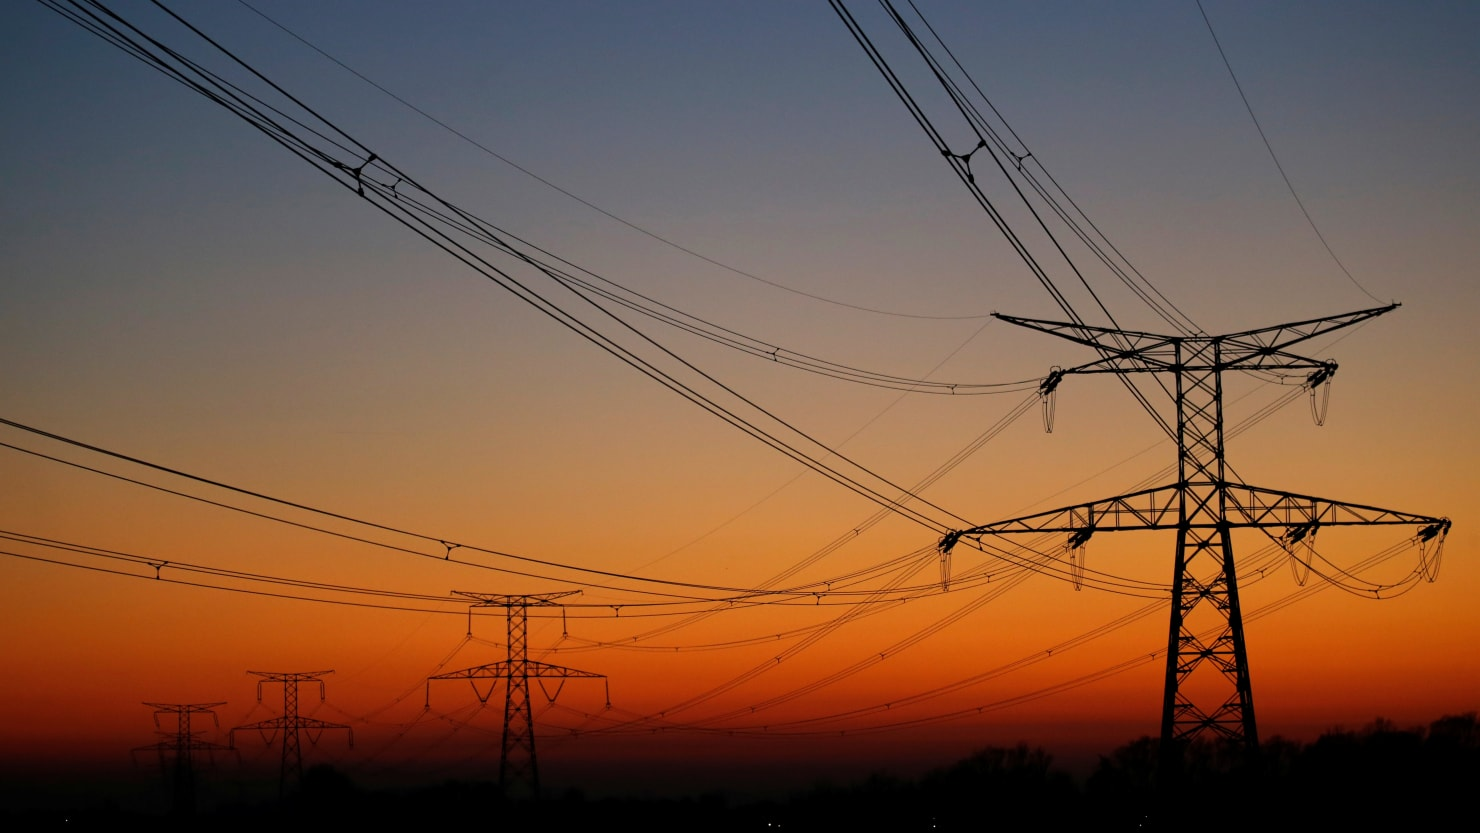 48 Million People Affected After Power Glitch Cuts Power to All of Argentina and Uruguay